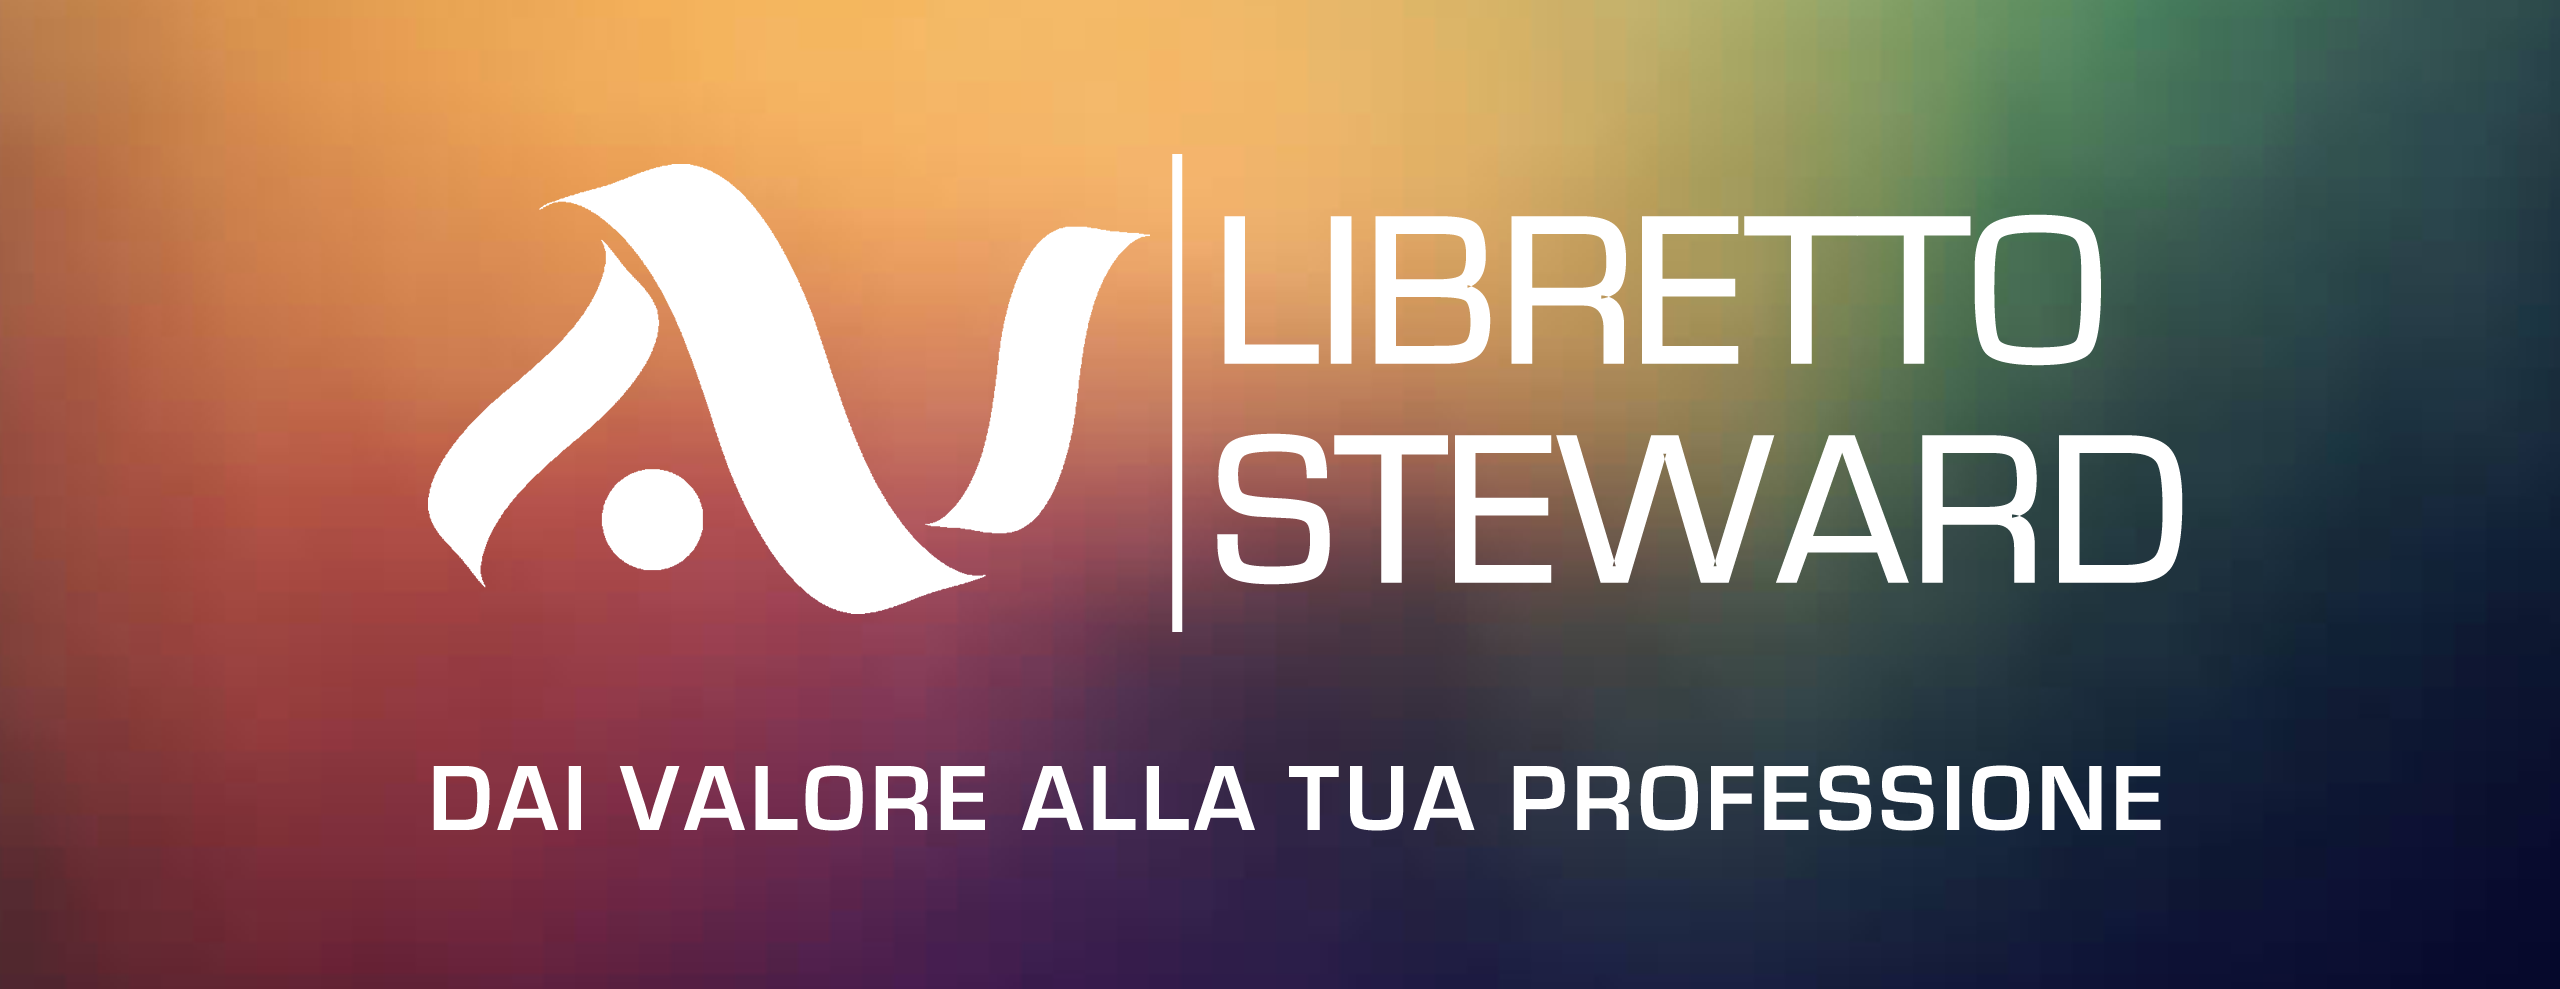 Libretto steward home